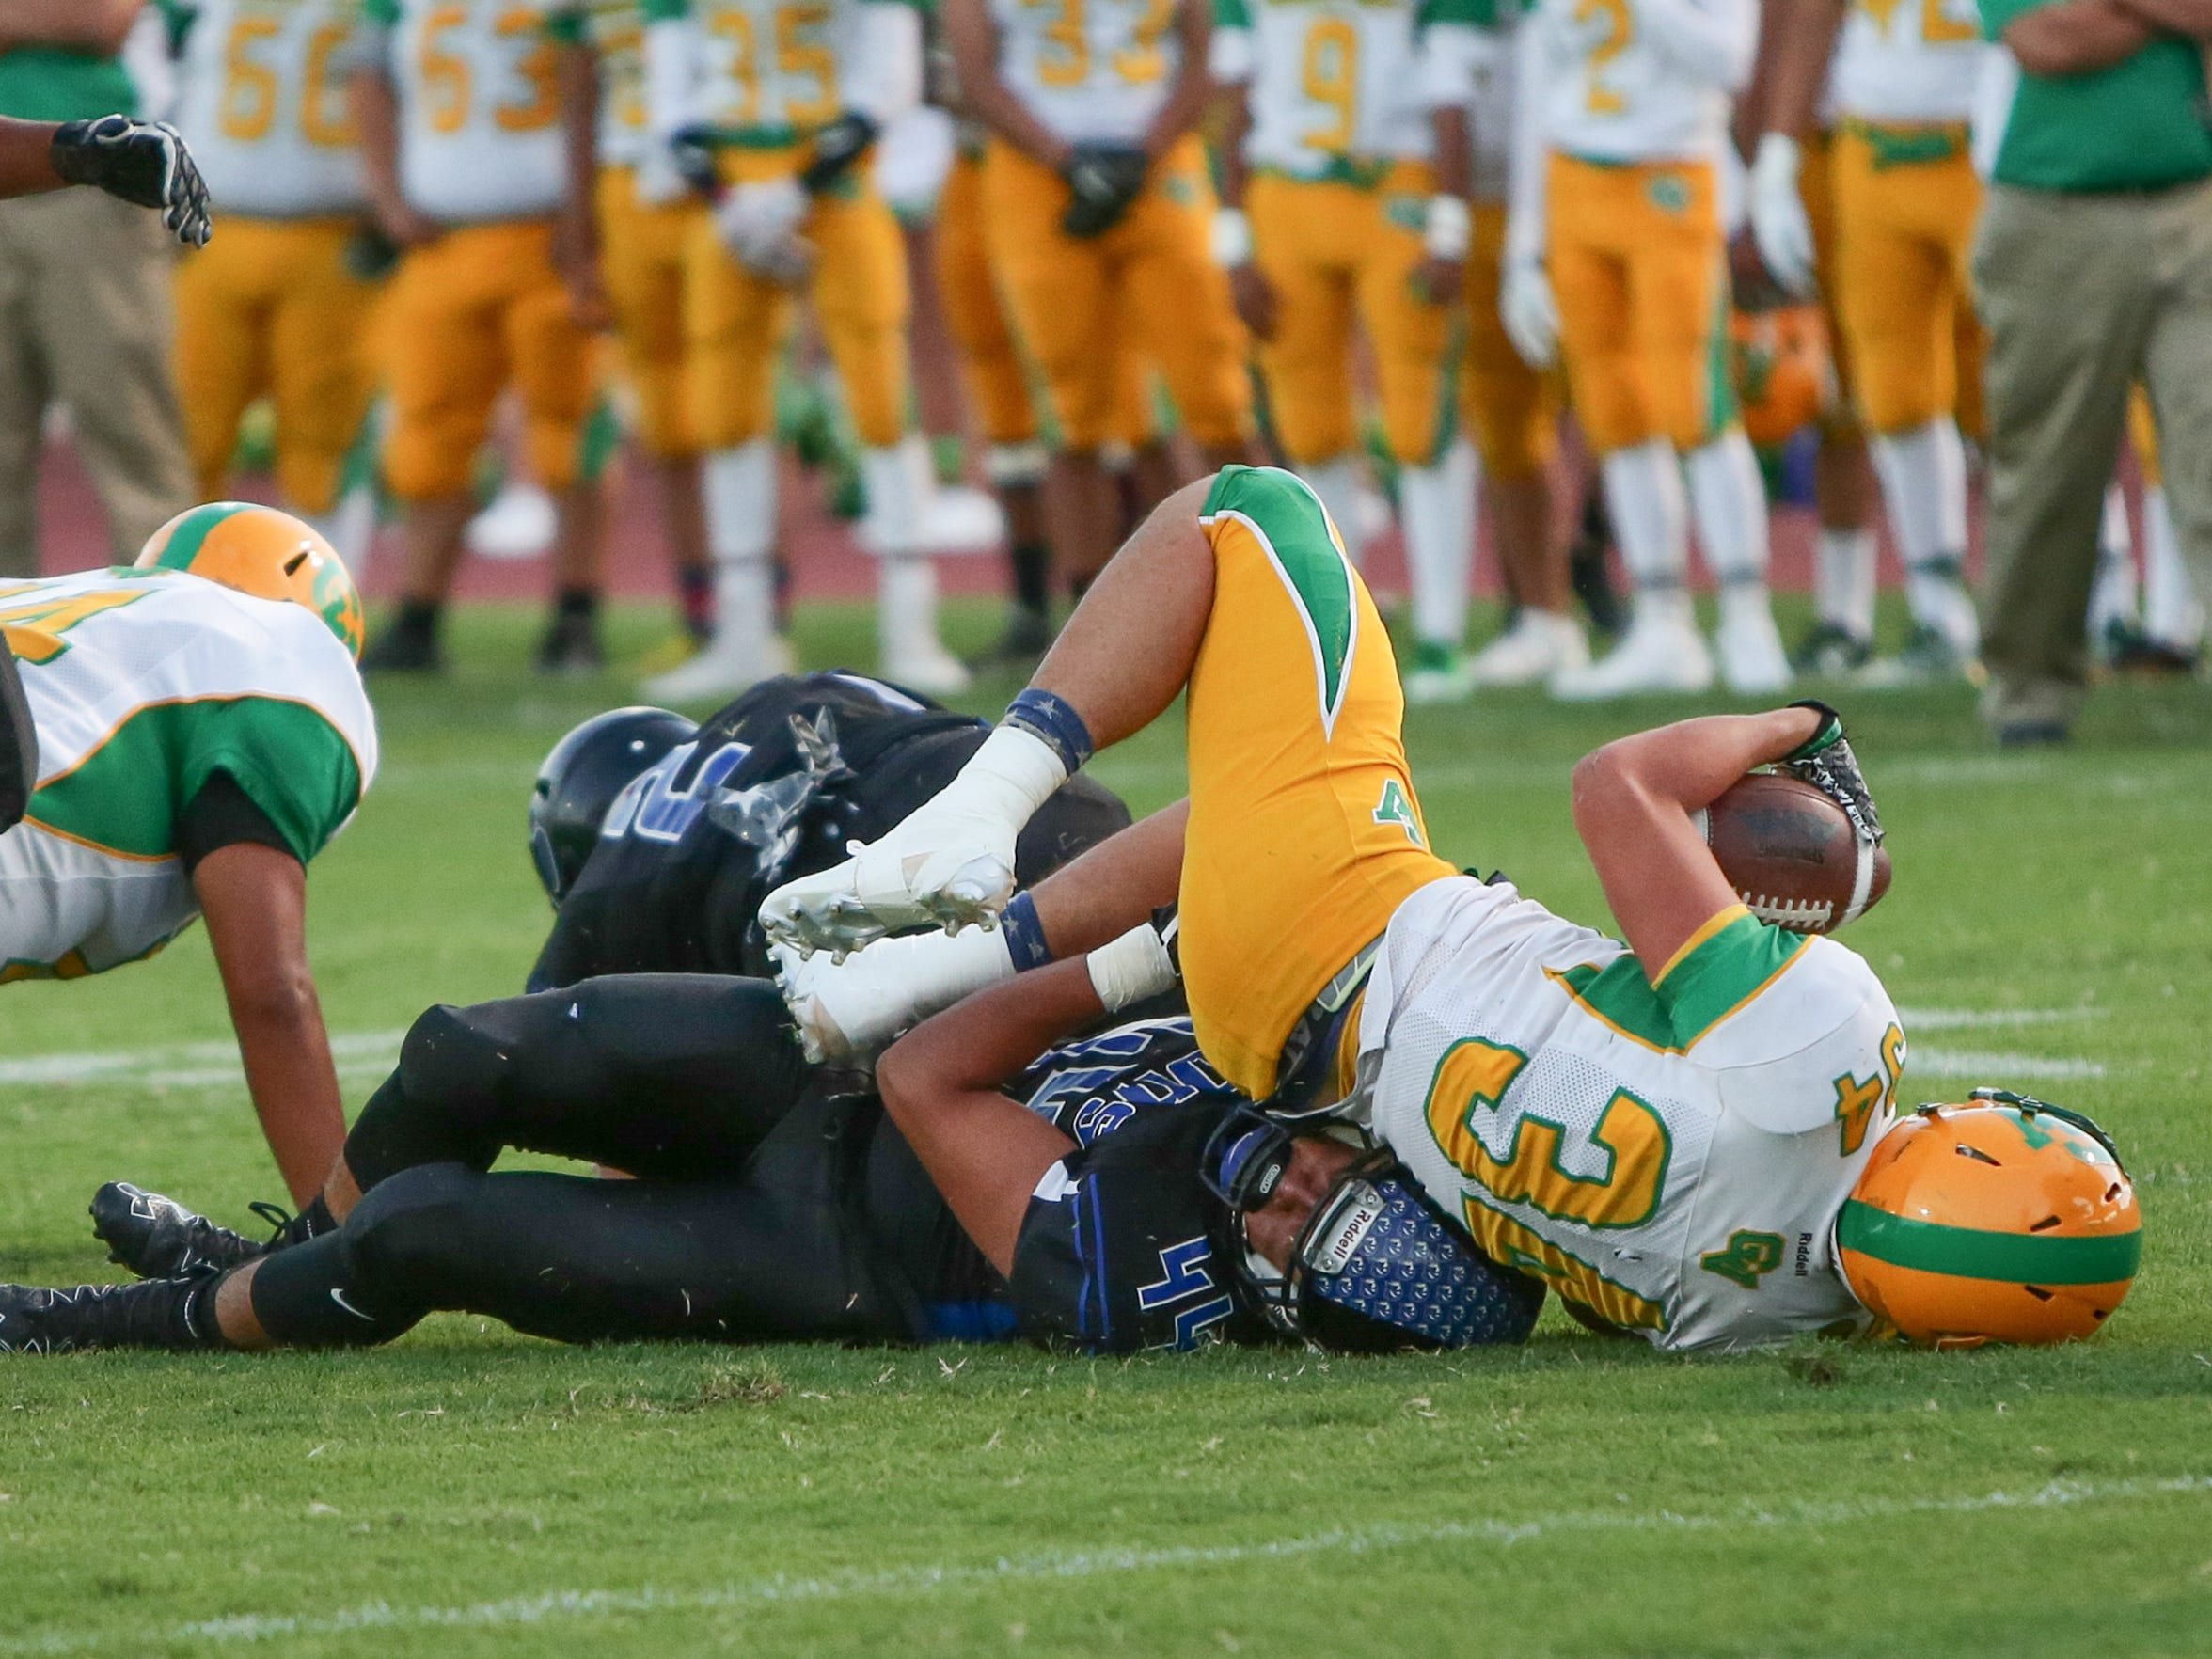 Cathedral City High School plays Coachella Valley High